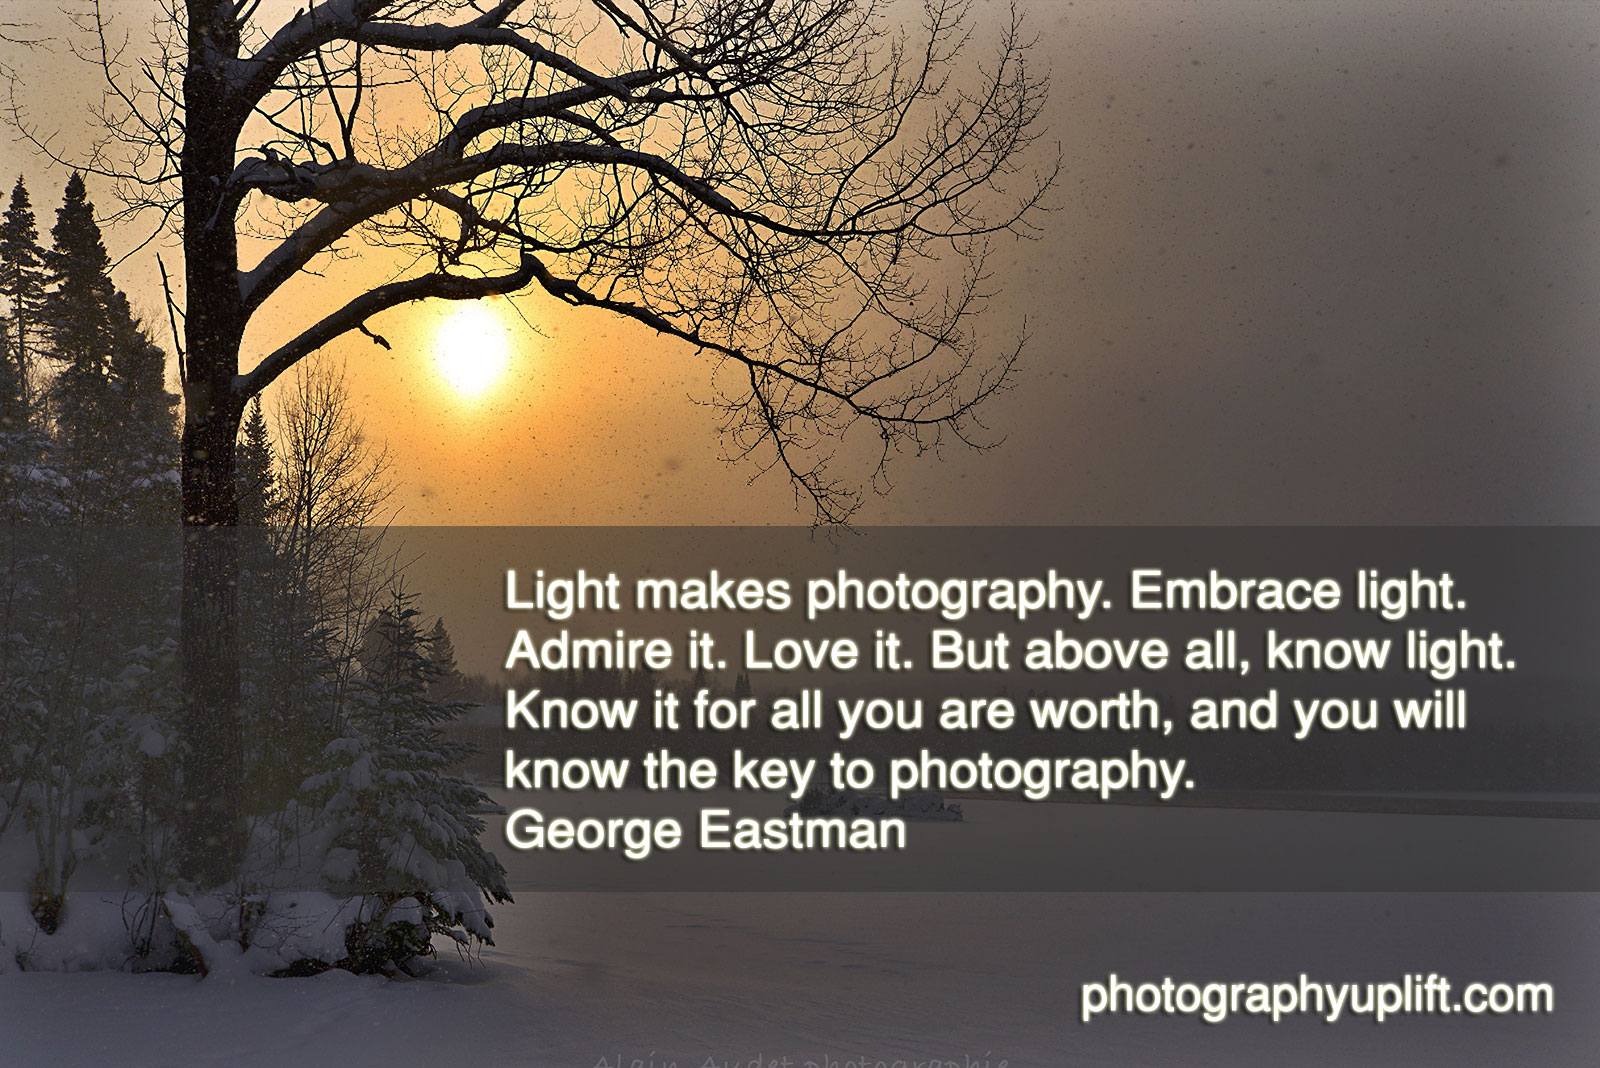 Photography Quotes Light Makes Photography  Photography Quotes